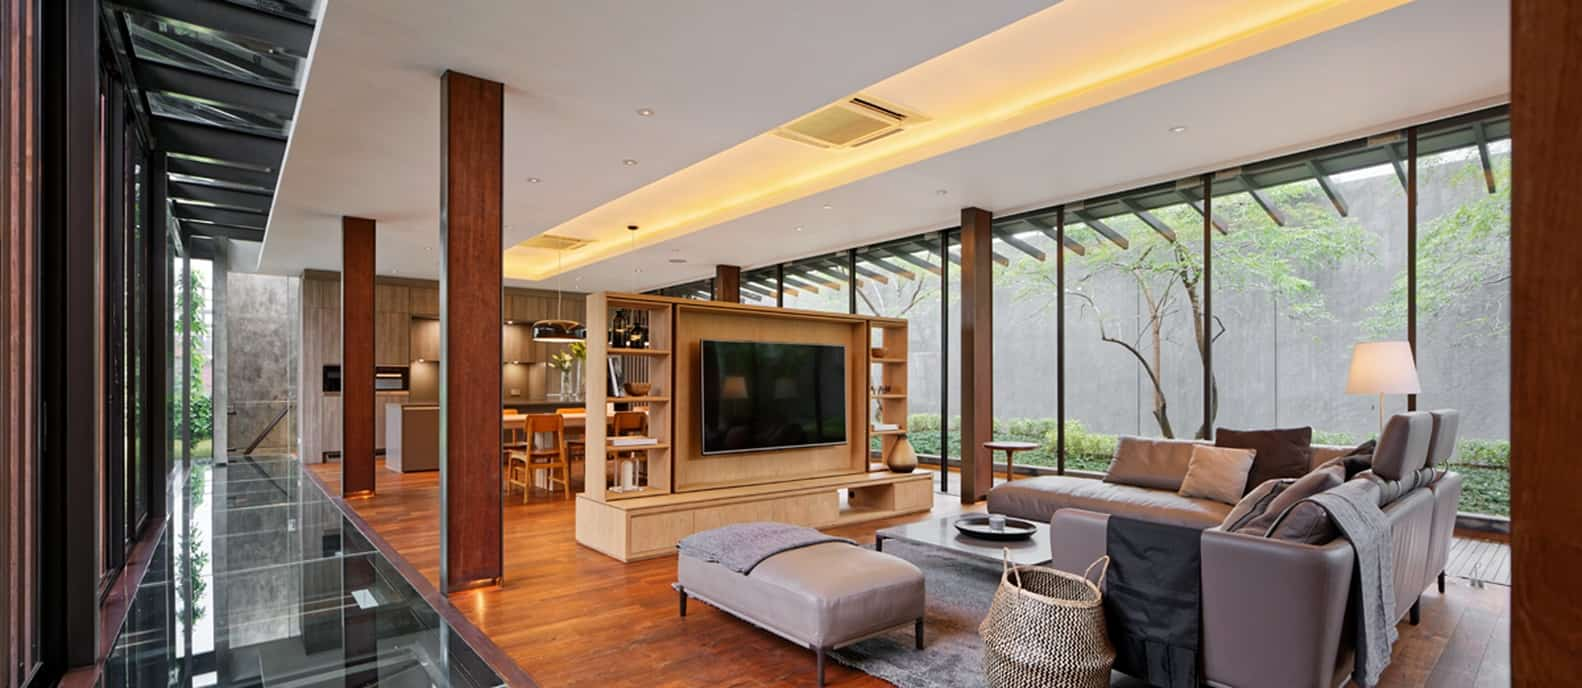 The Upstairs House, a stunning and aptly named home by Wahana Architects, redefines tropical living